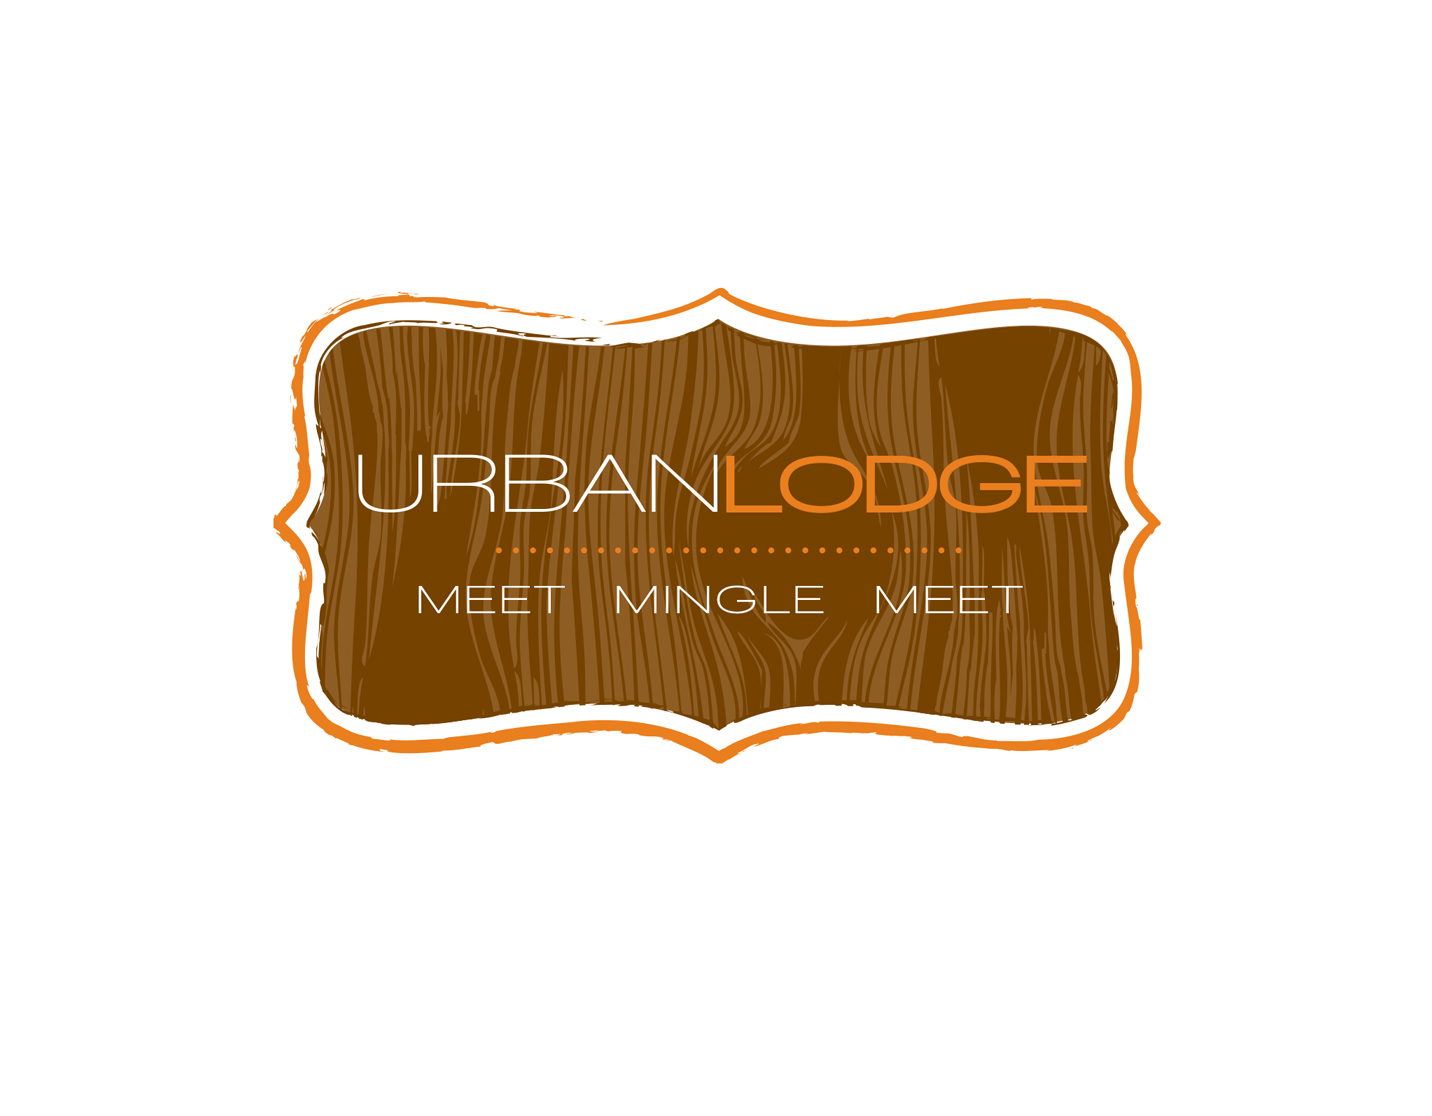 Urban Lodge